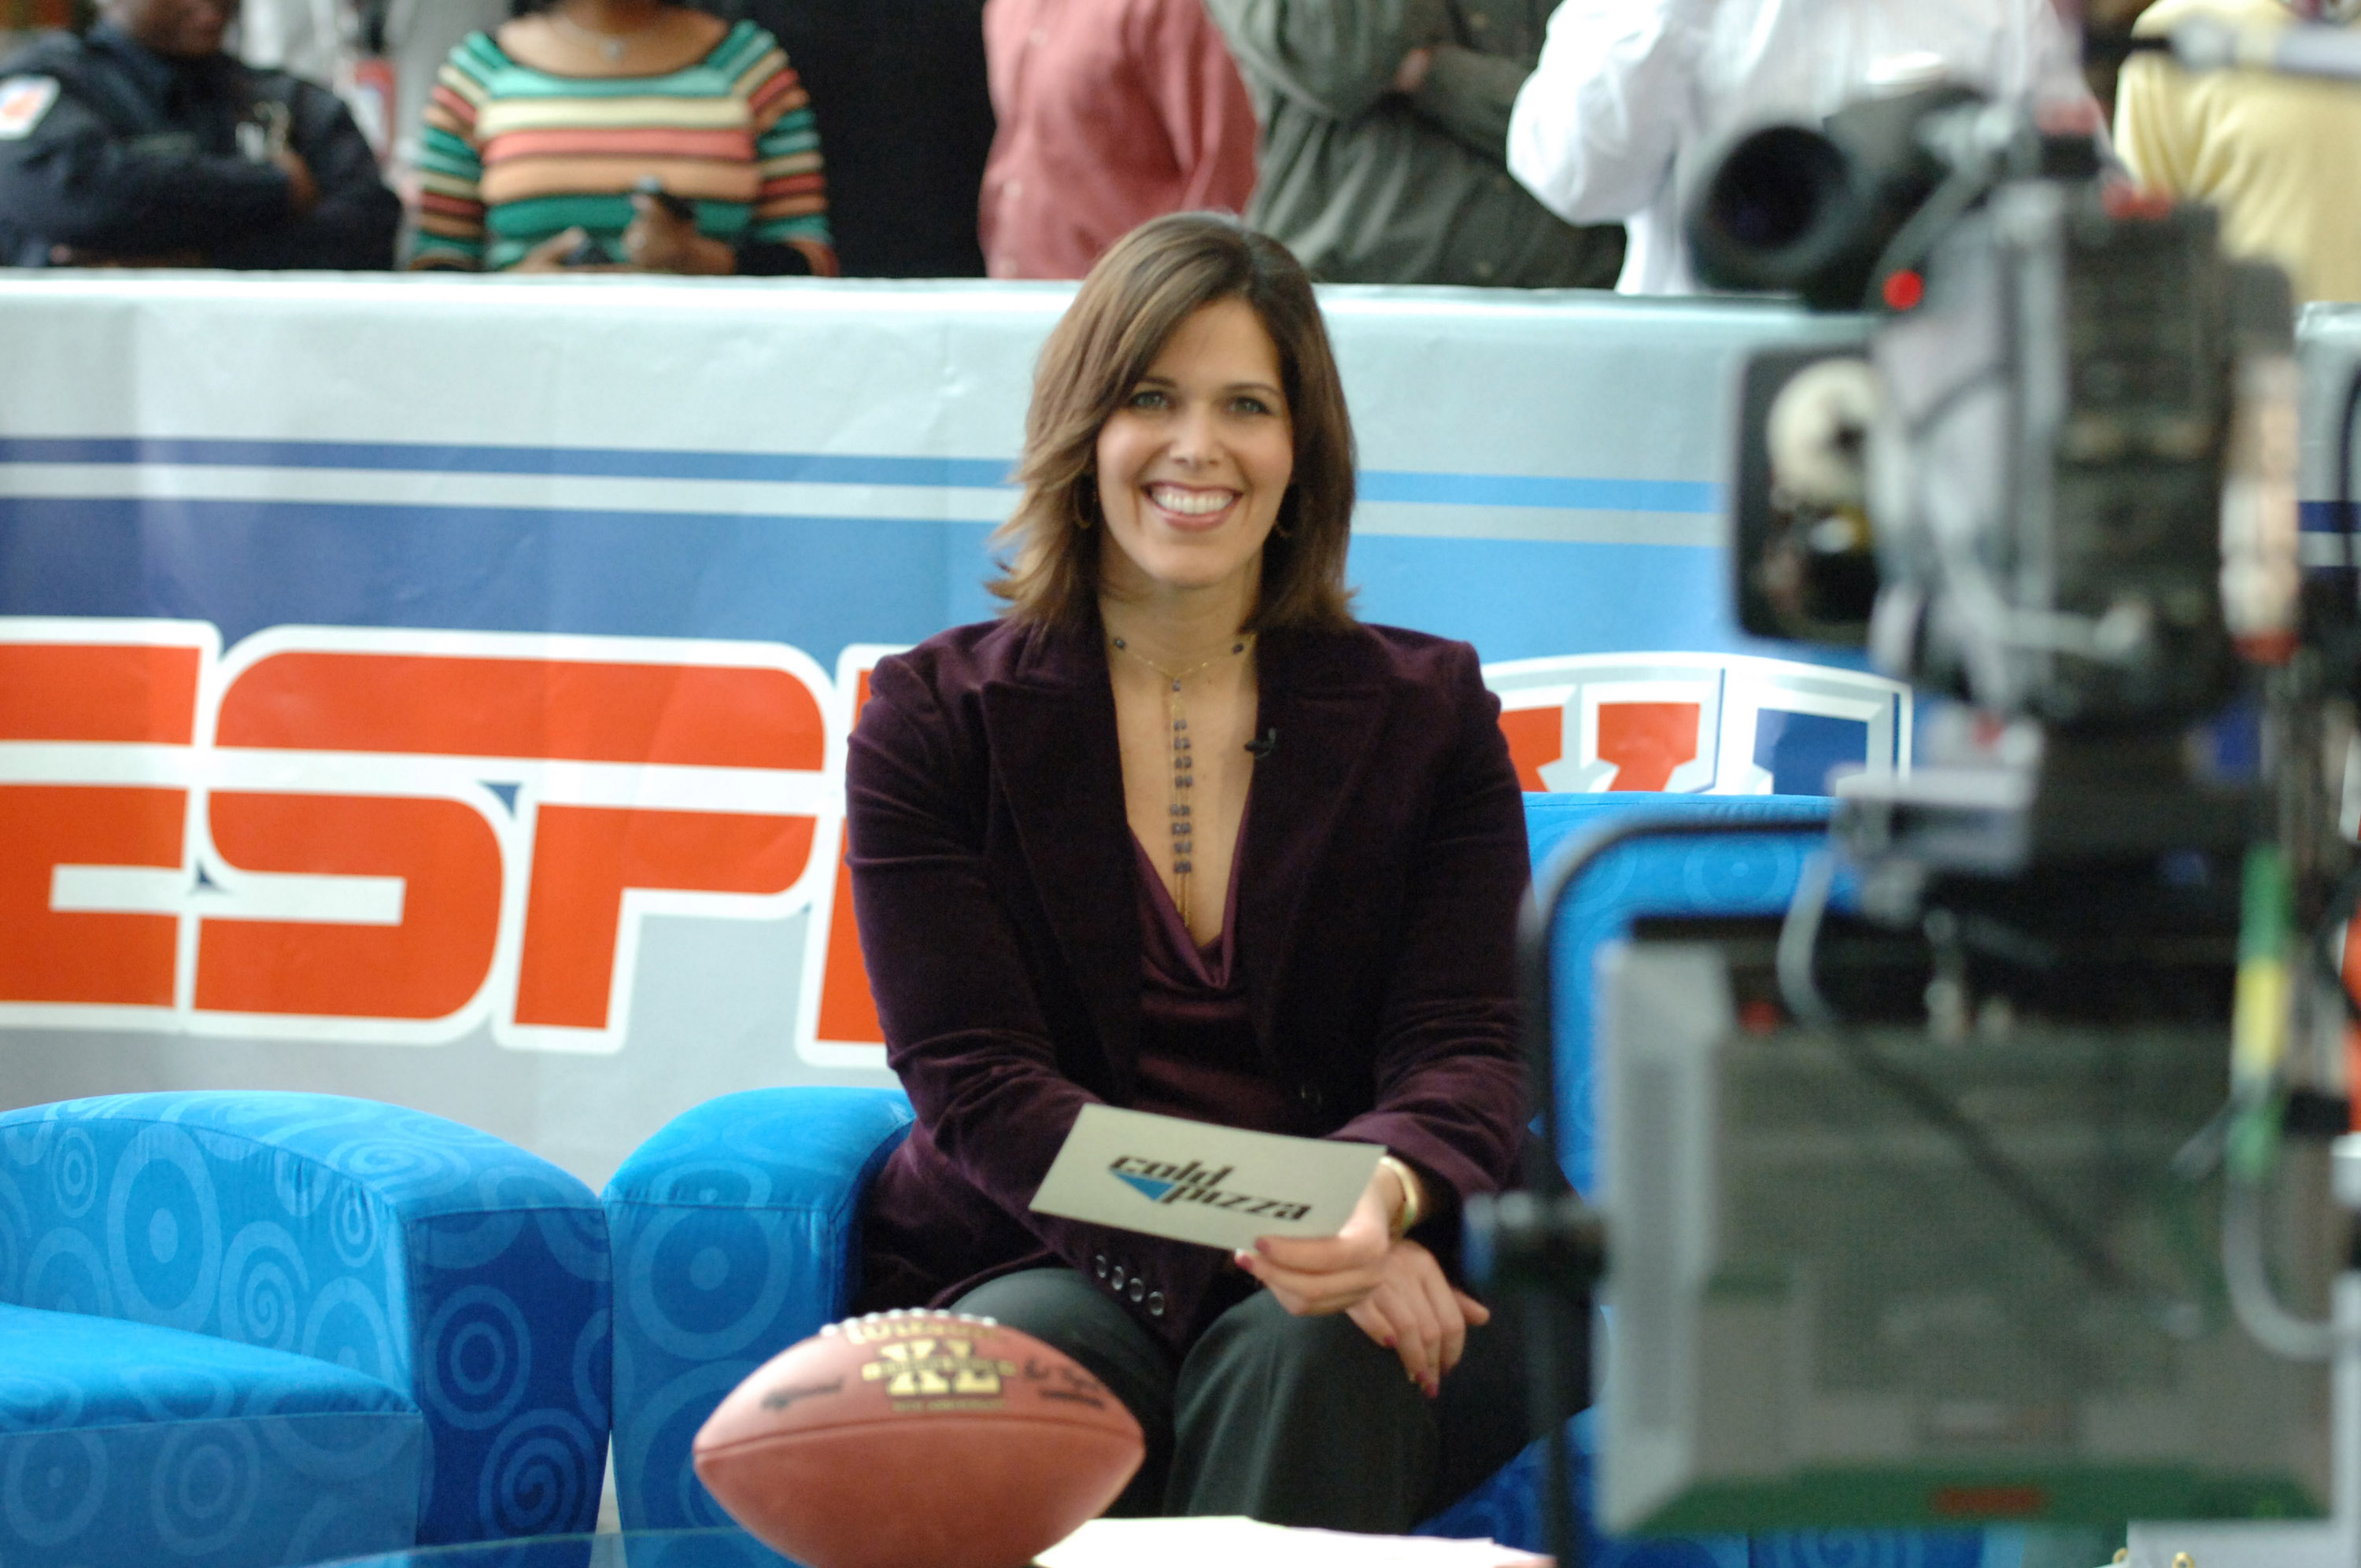 Dana Jacobson during a broadcast of ESPN's Cold Pizza from the Super Bowl XL Media Center at the Renaissance Center in Detroit, Michigan on January 30, 2006.  (Photo by Al Messerschmidt/Getty Images)